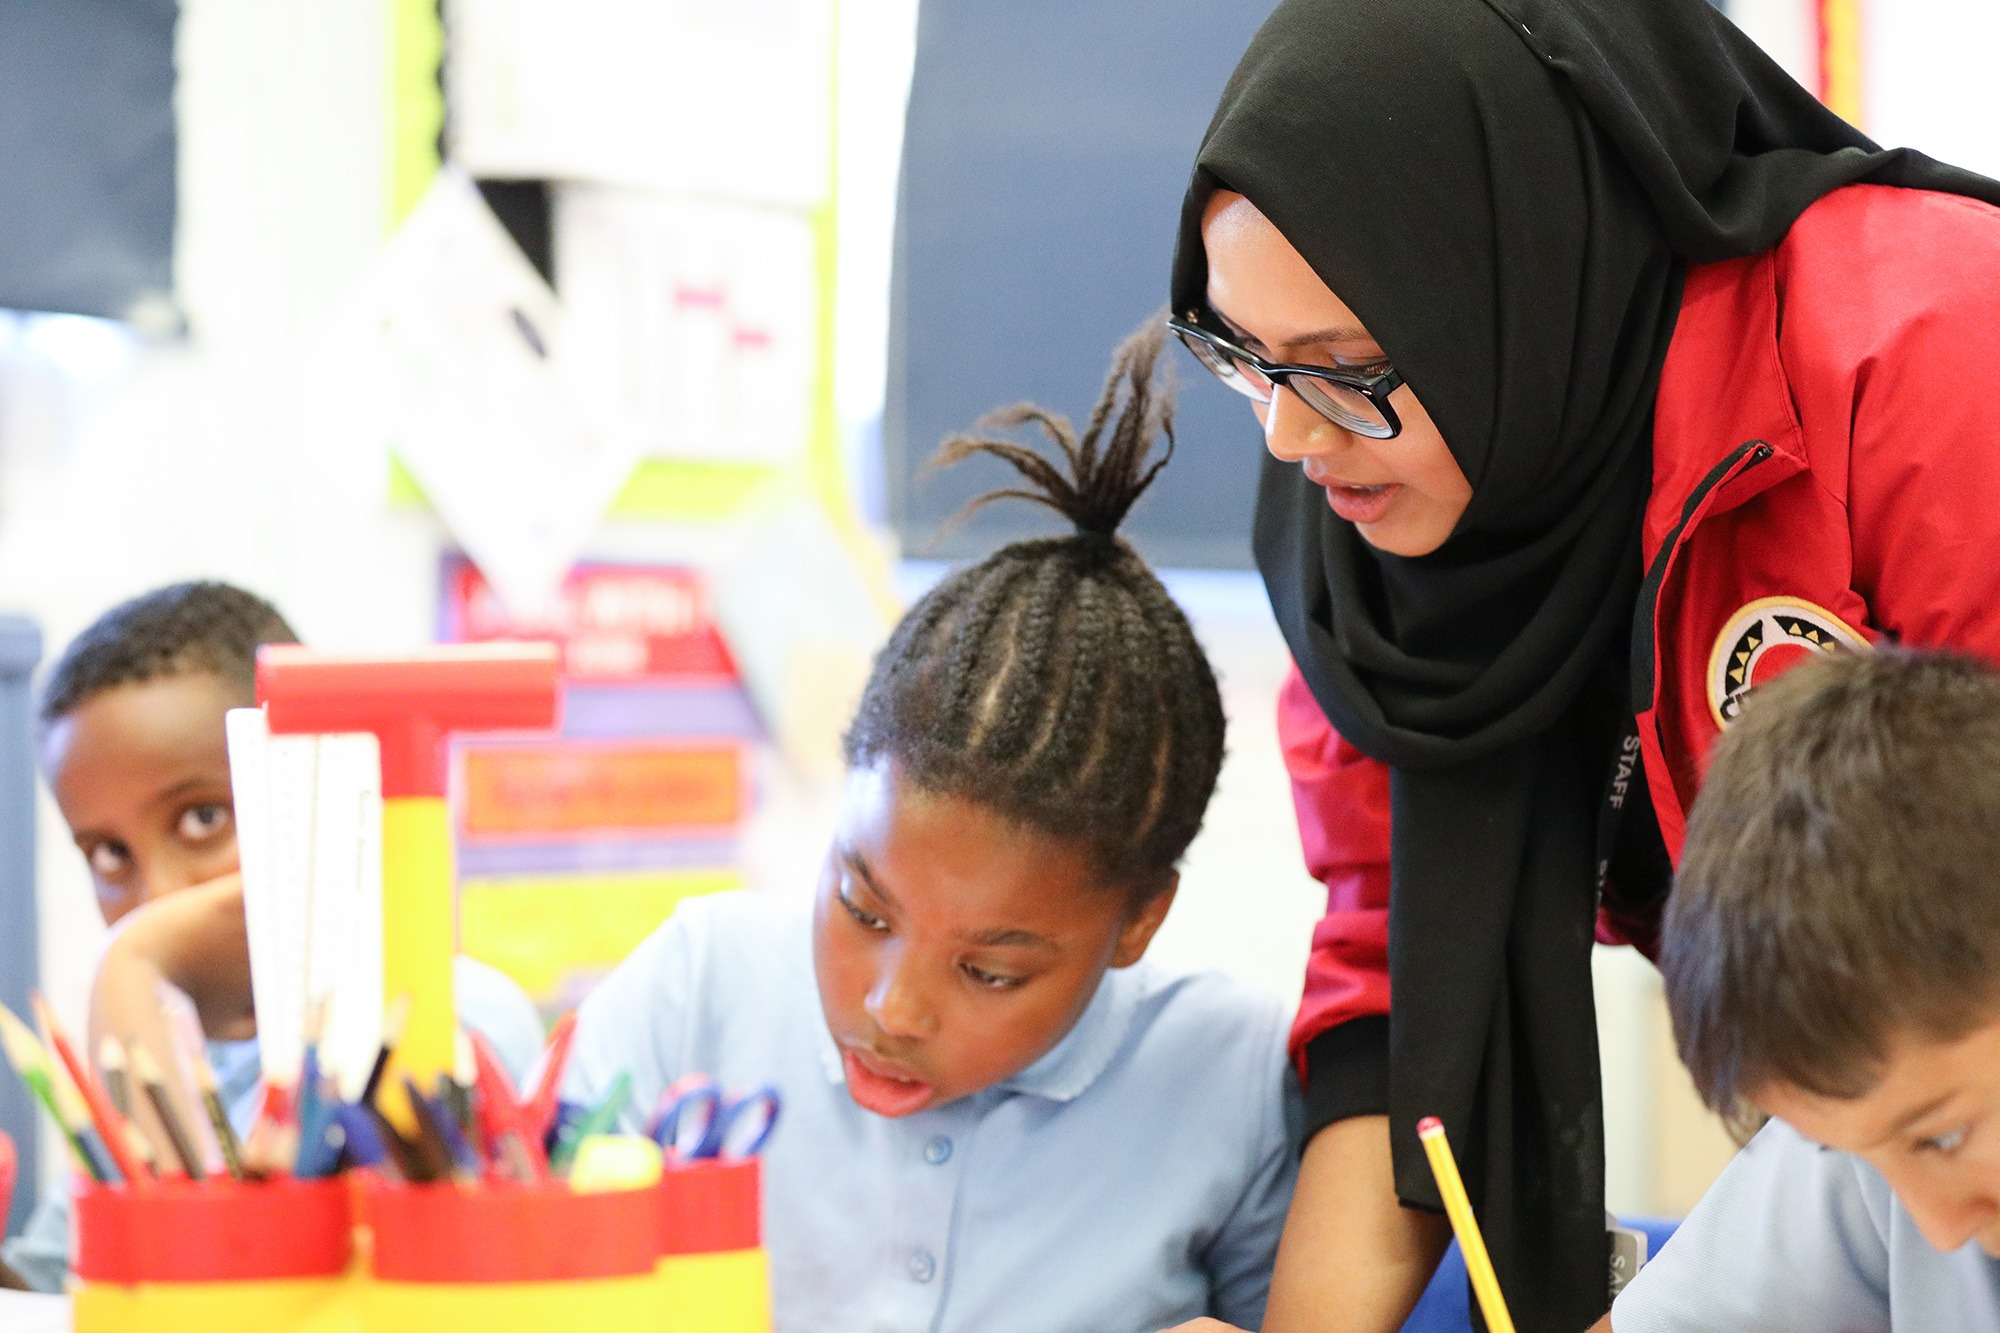 Female volunteer mentor with a hijab leaning over a pupil